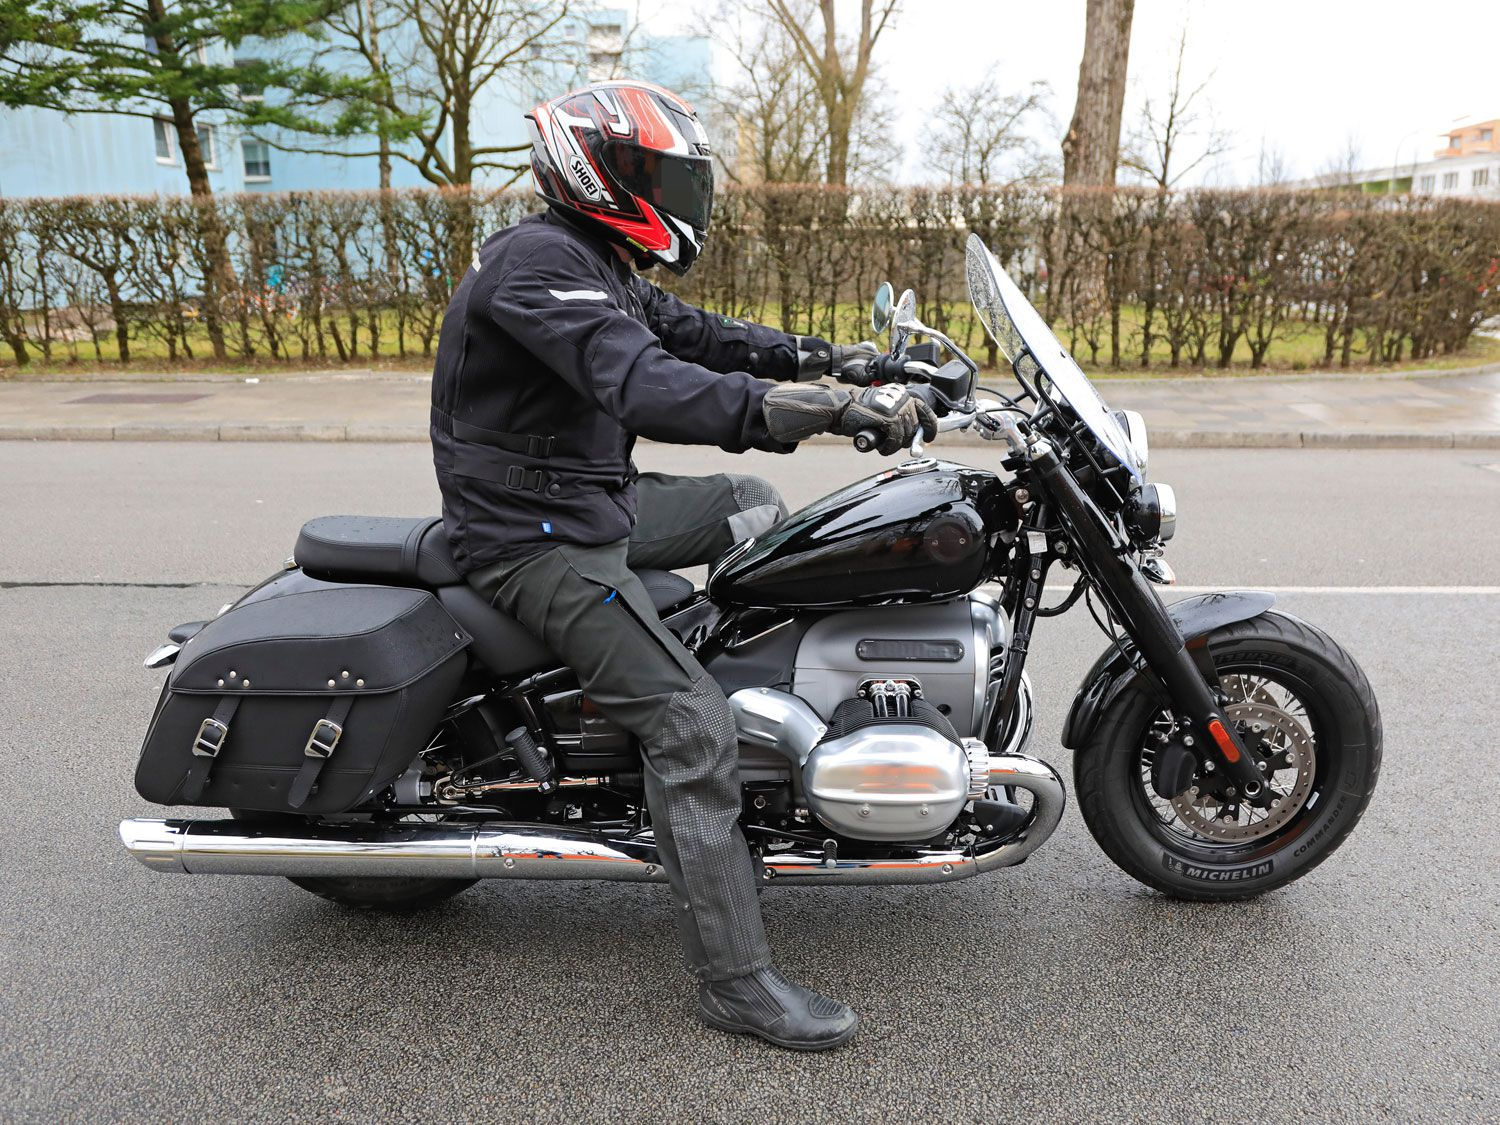 Bmw R 1800 Basic Cruiser Spied Testing Motorcyclist